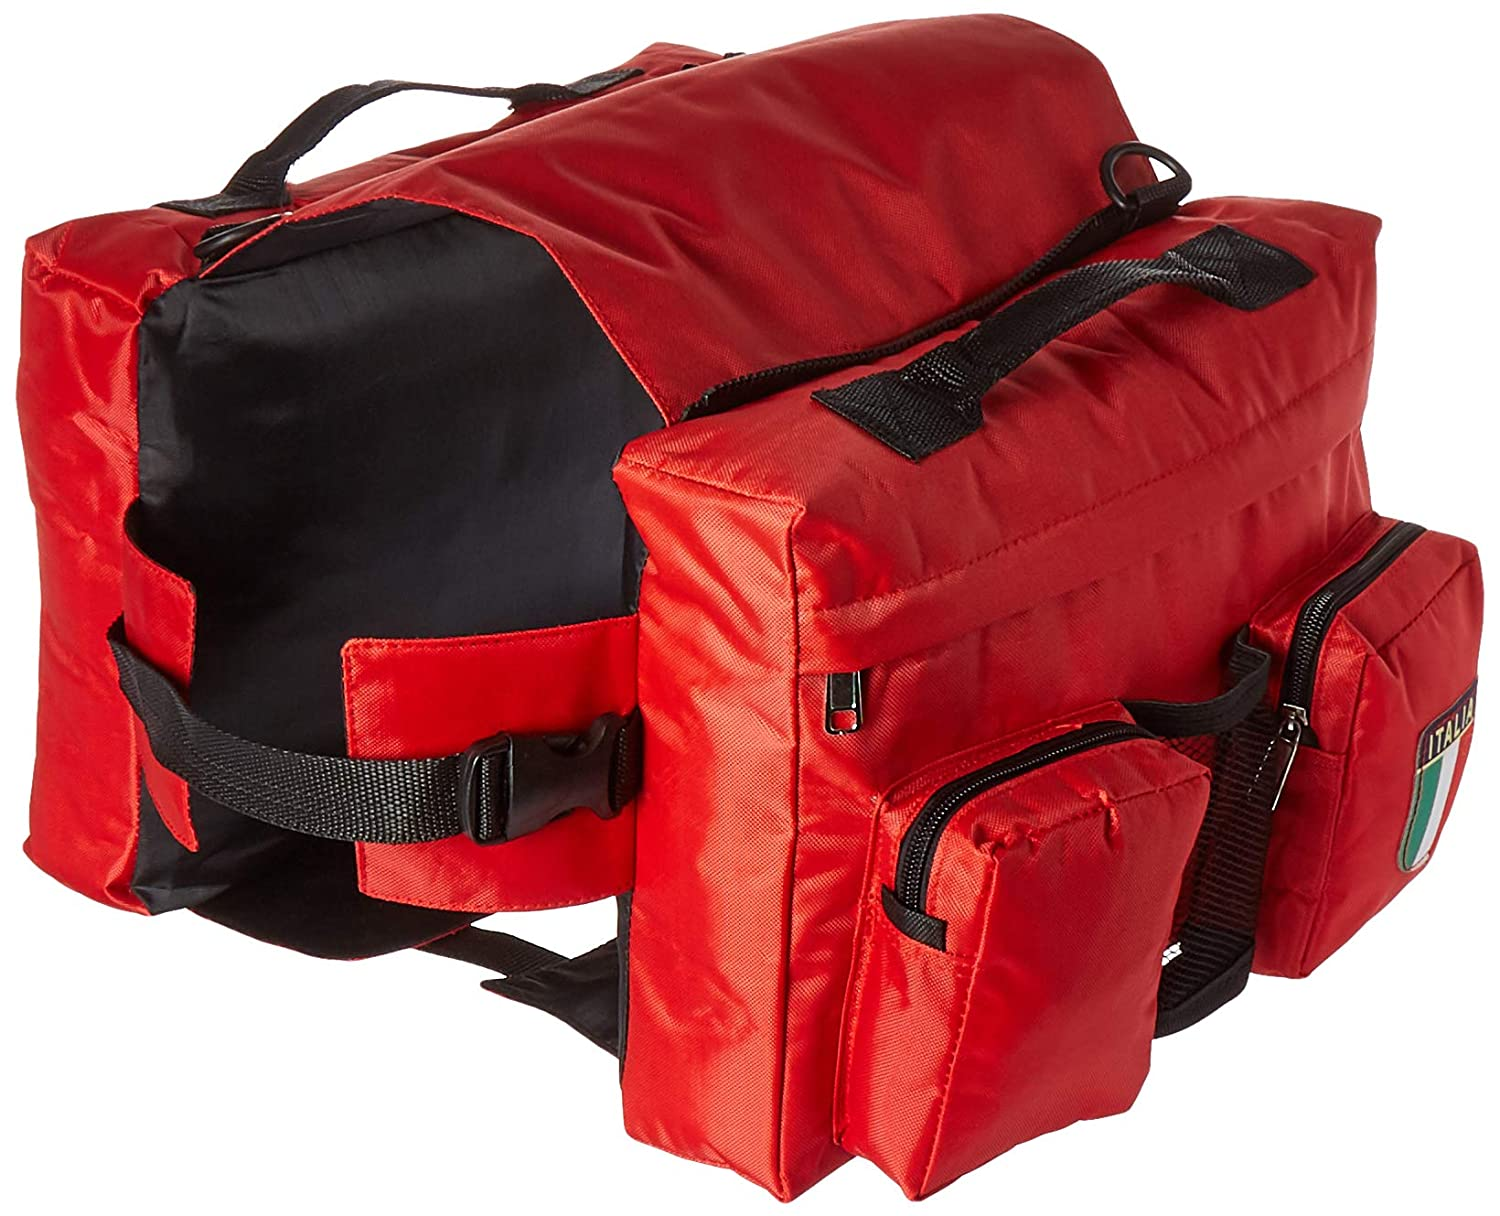 Waterproof Travel Camping Hiking Dog Back Pack Bag for Large Dogs